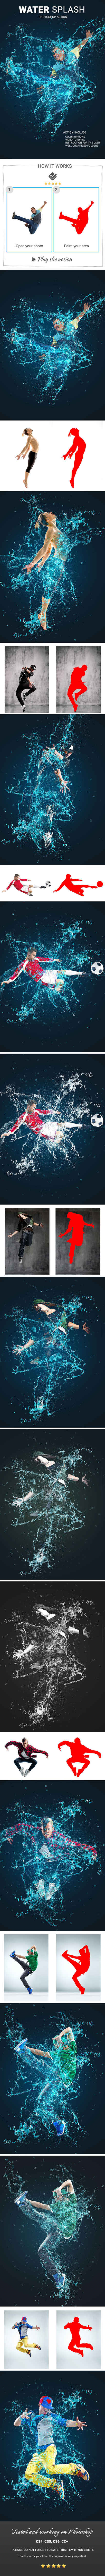 Water Splash Photoshop Action - Photo Effects Actions